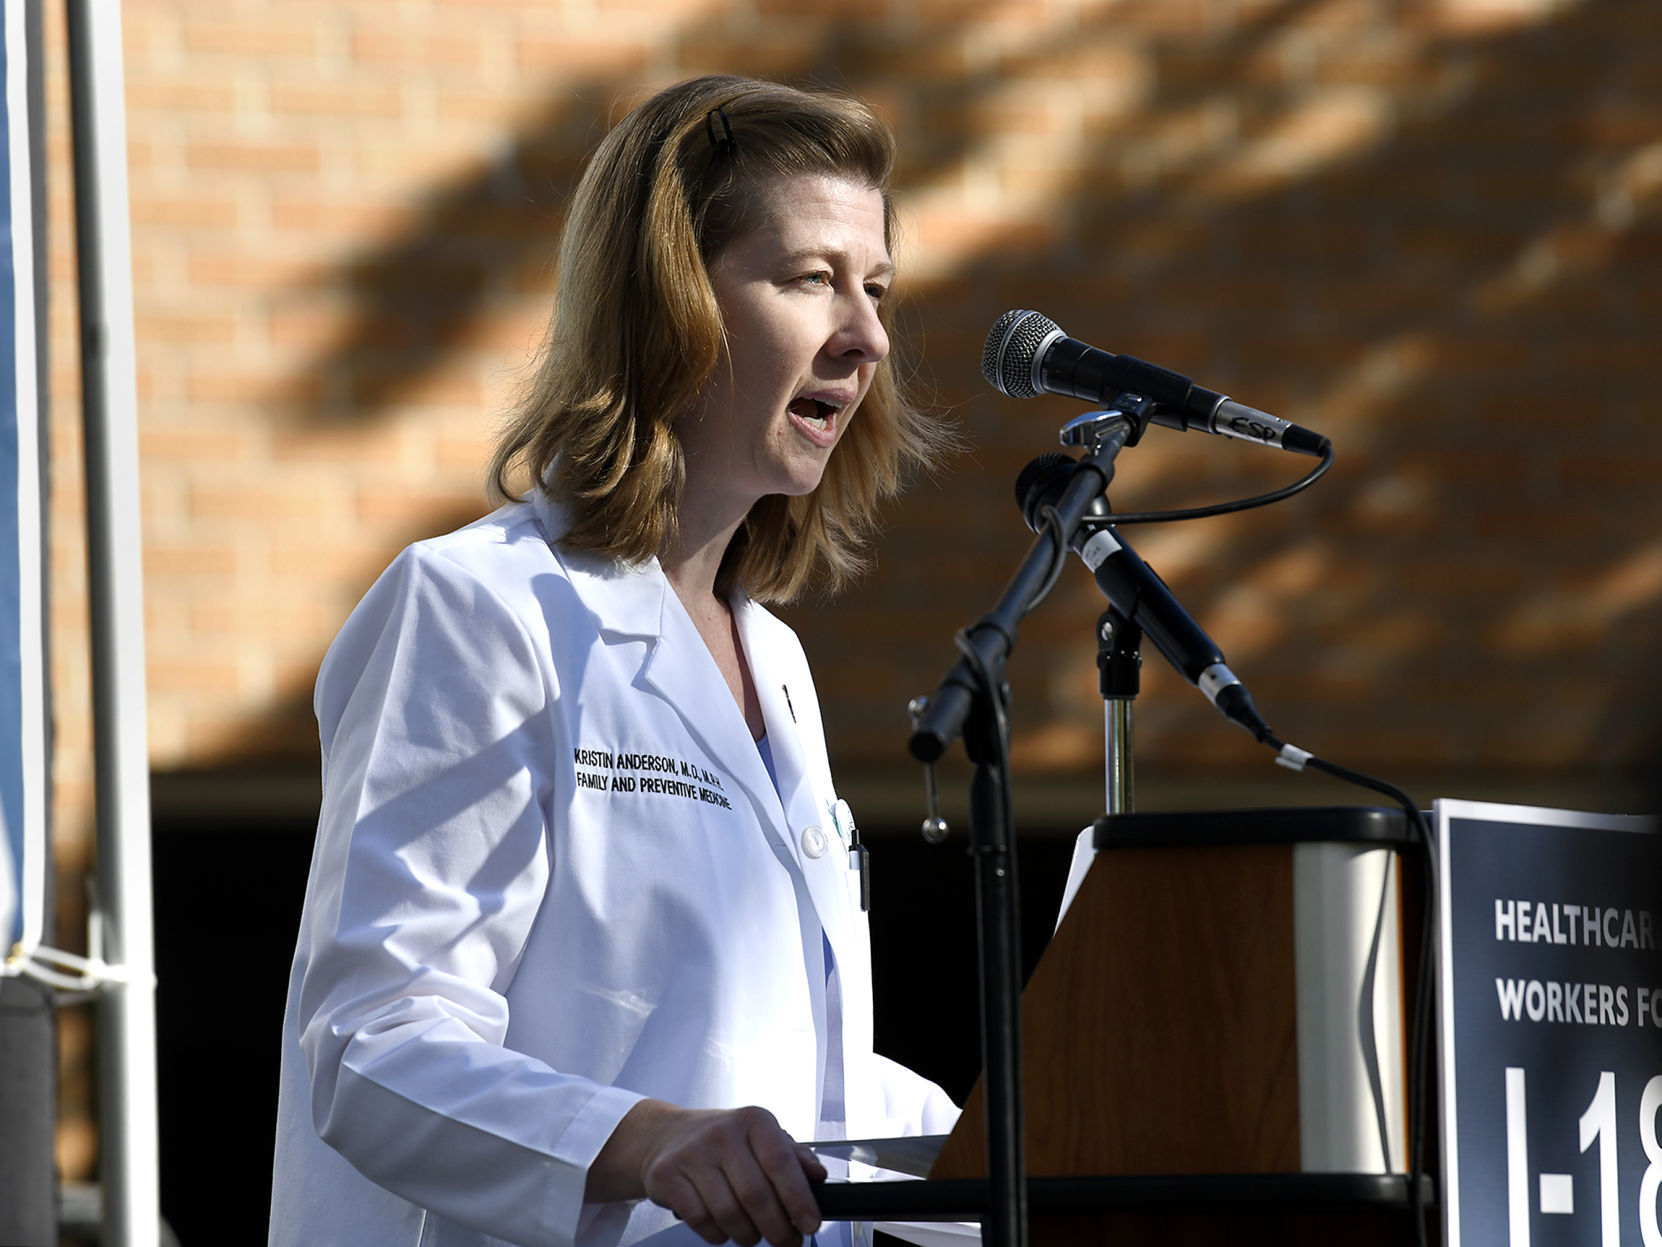 Doctors Rally in Support of Fibroid Device Curbed by FDA